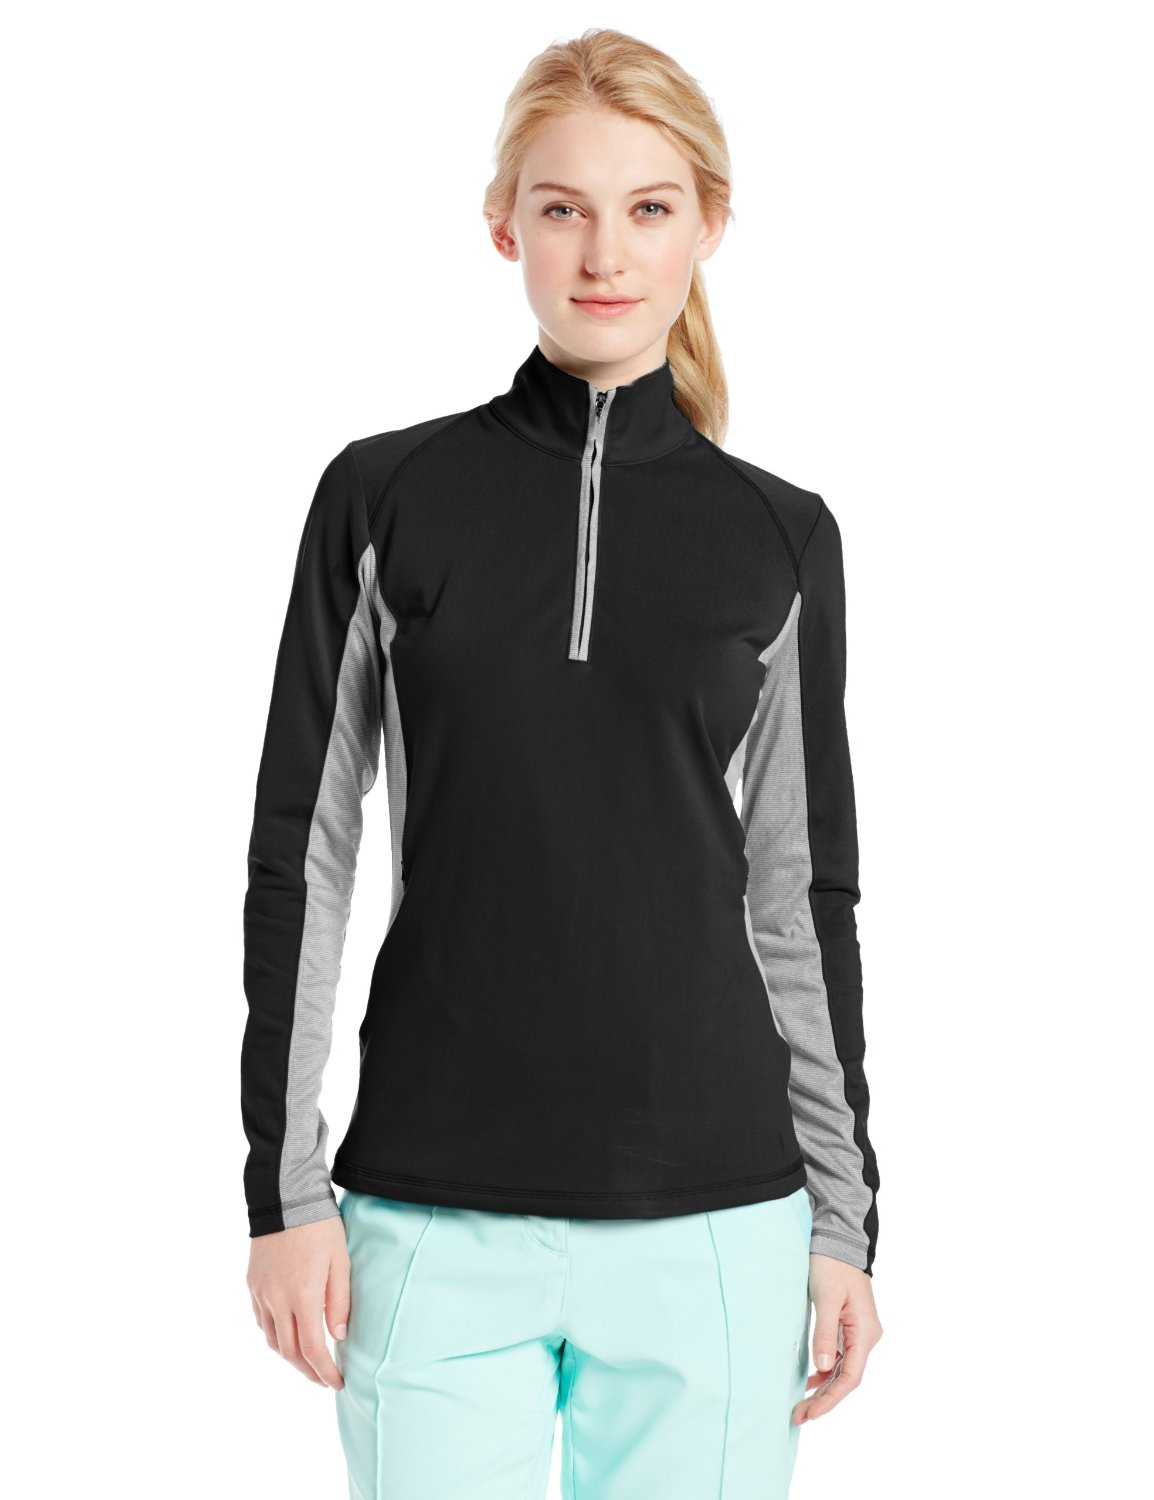 Adidas Womens Microstripe Block Golf Jackets